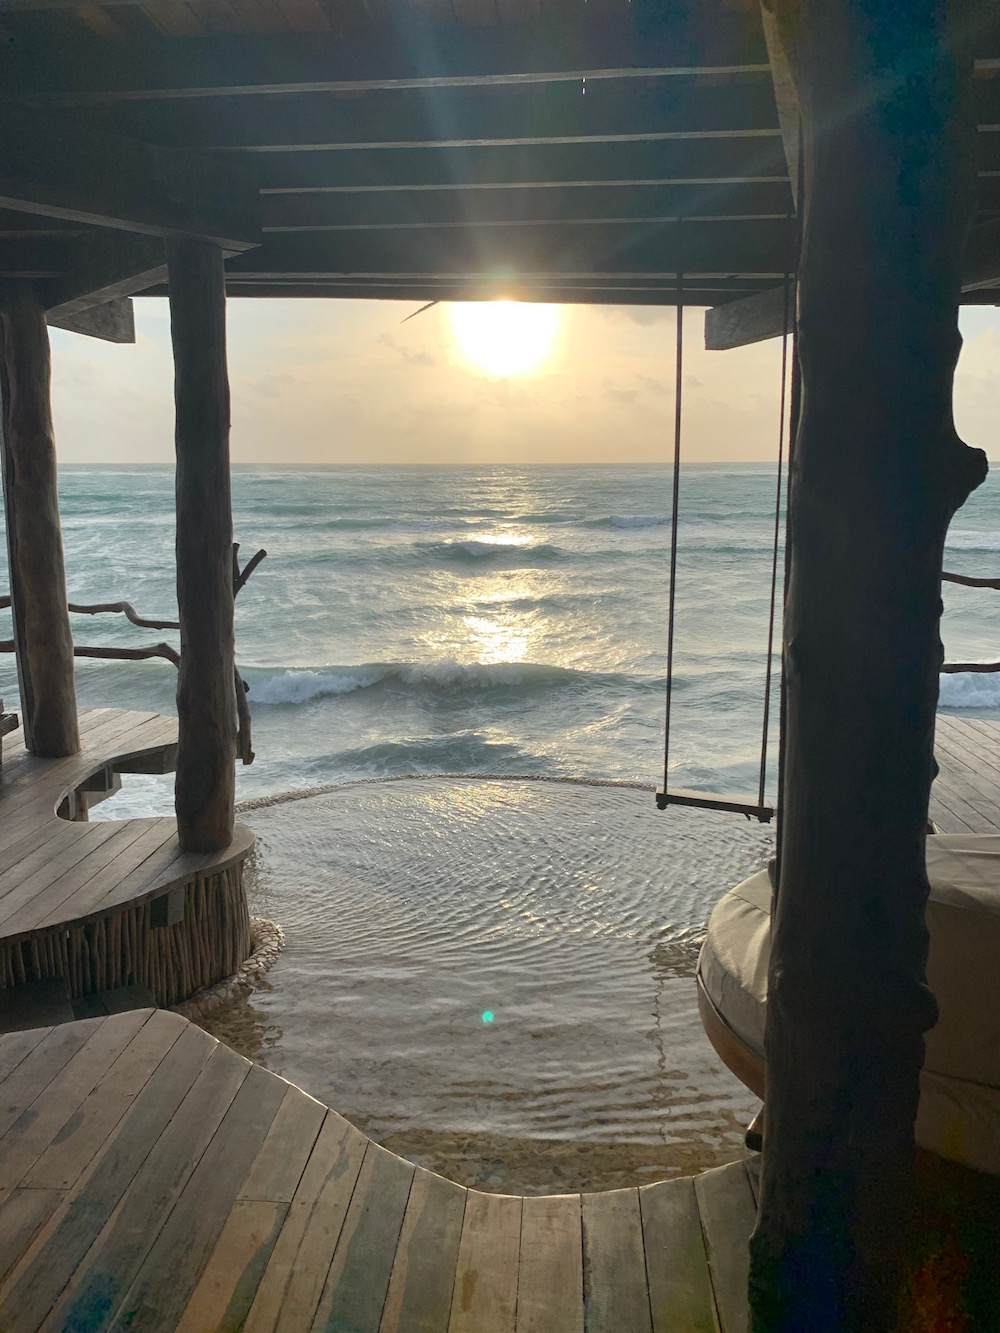 The view from my room at Azulik. Photo: Natasha Stagg.